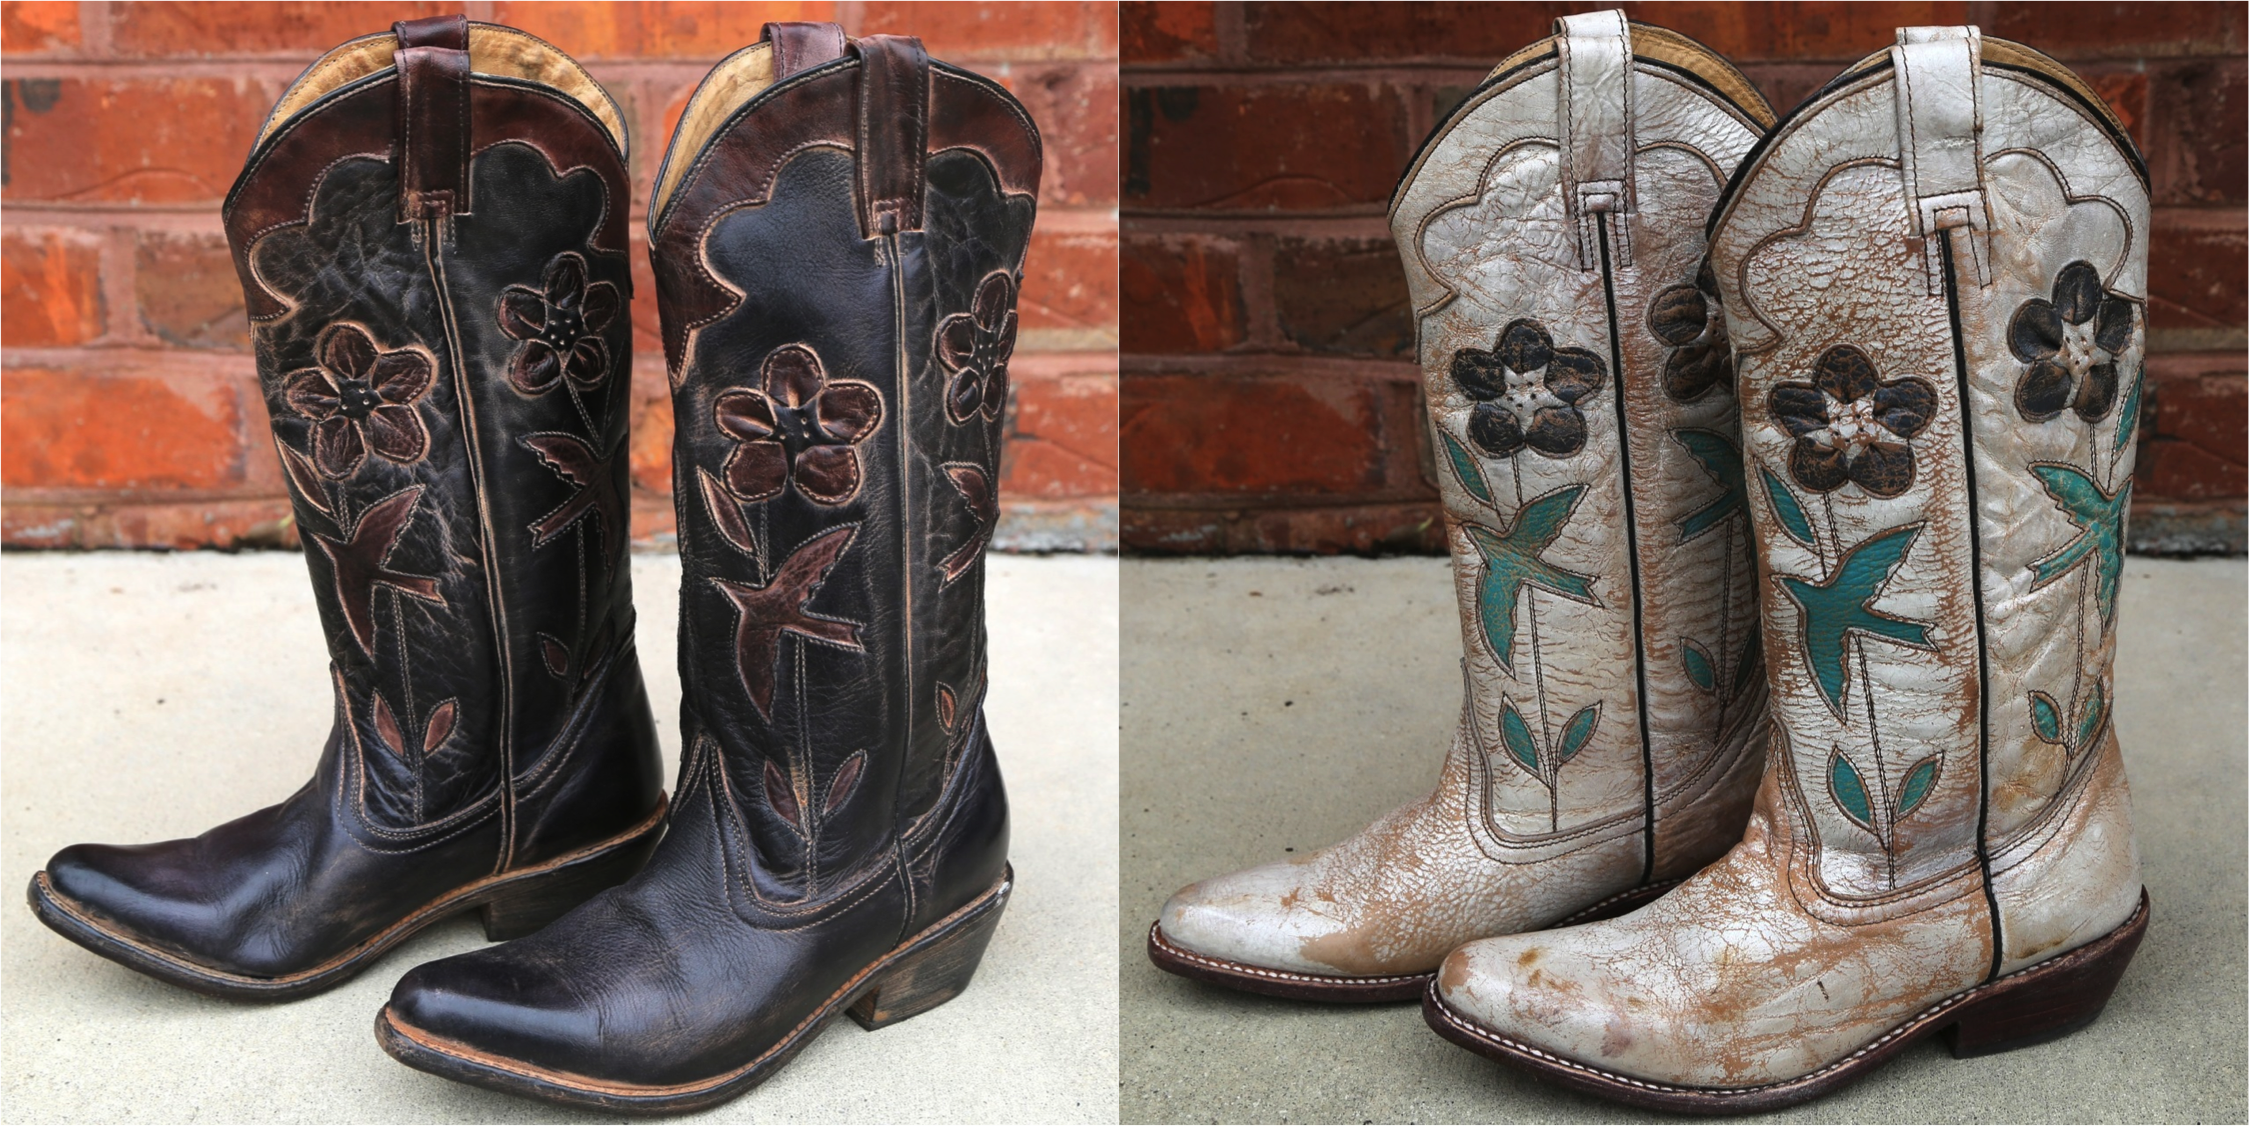 Buy Bed Stu Cowboy Boots - Rivertrail Mercantile